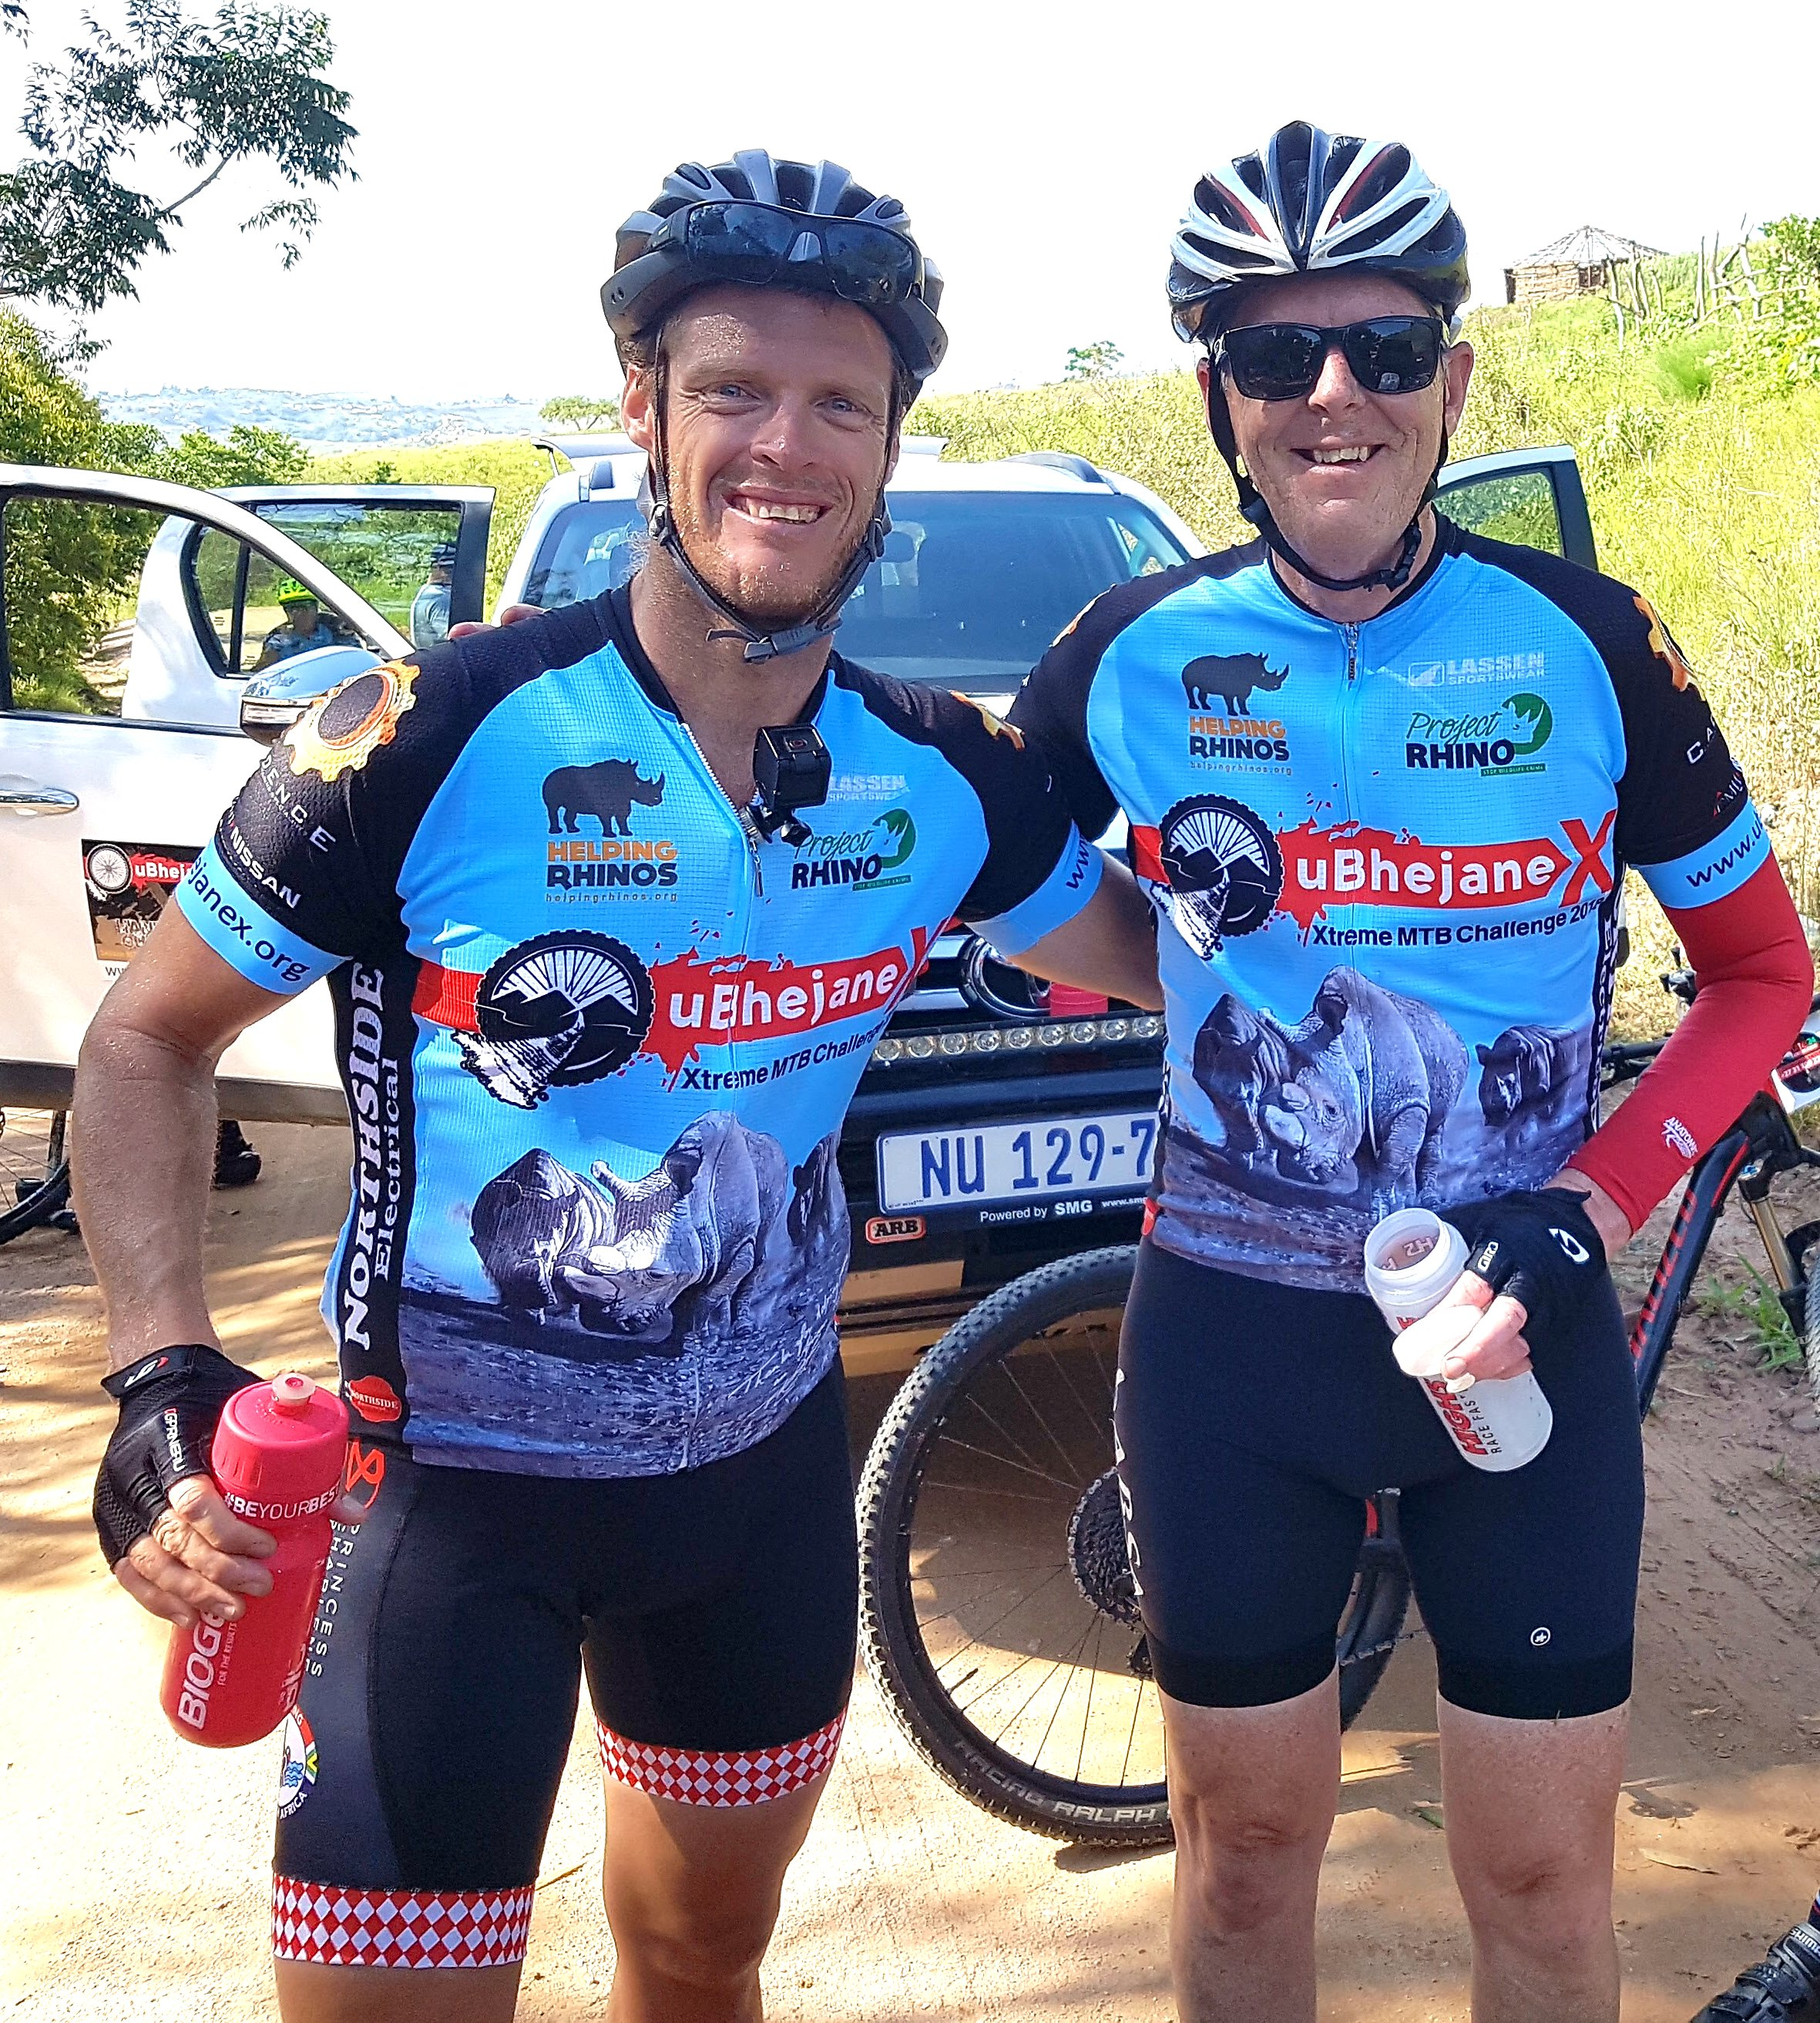 """Olympian Terence Parkin (left) and Kloof cyclist Dave Duke (right) looking fresh halfway through the 140km first stageon Thursday of their attempt at a 570km 'Ultimate' uBhejane Xtreme MTB Challenge. """"Rhino poaching is sadly at a record high, threat of extinction is real. That is why we are doing this ride. There may be no more of these magnificent beasts left for future generations,"""" said Duke. Grant Fowlds/ Gameplan Media"""